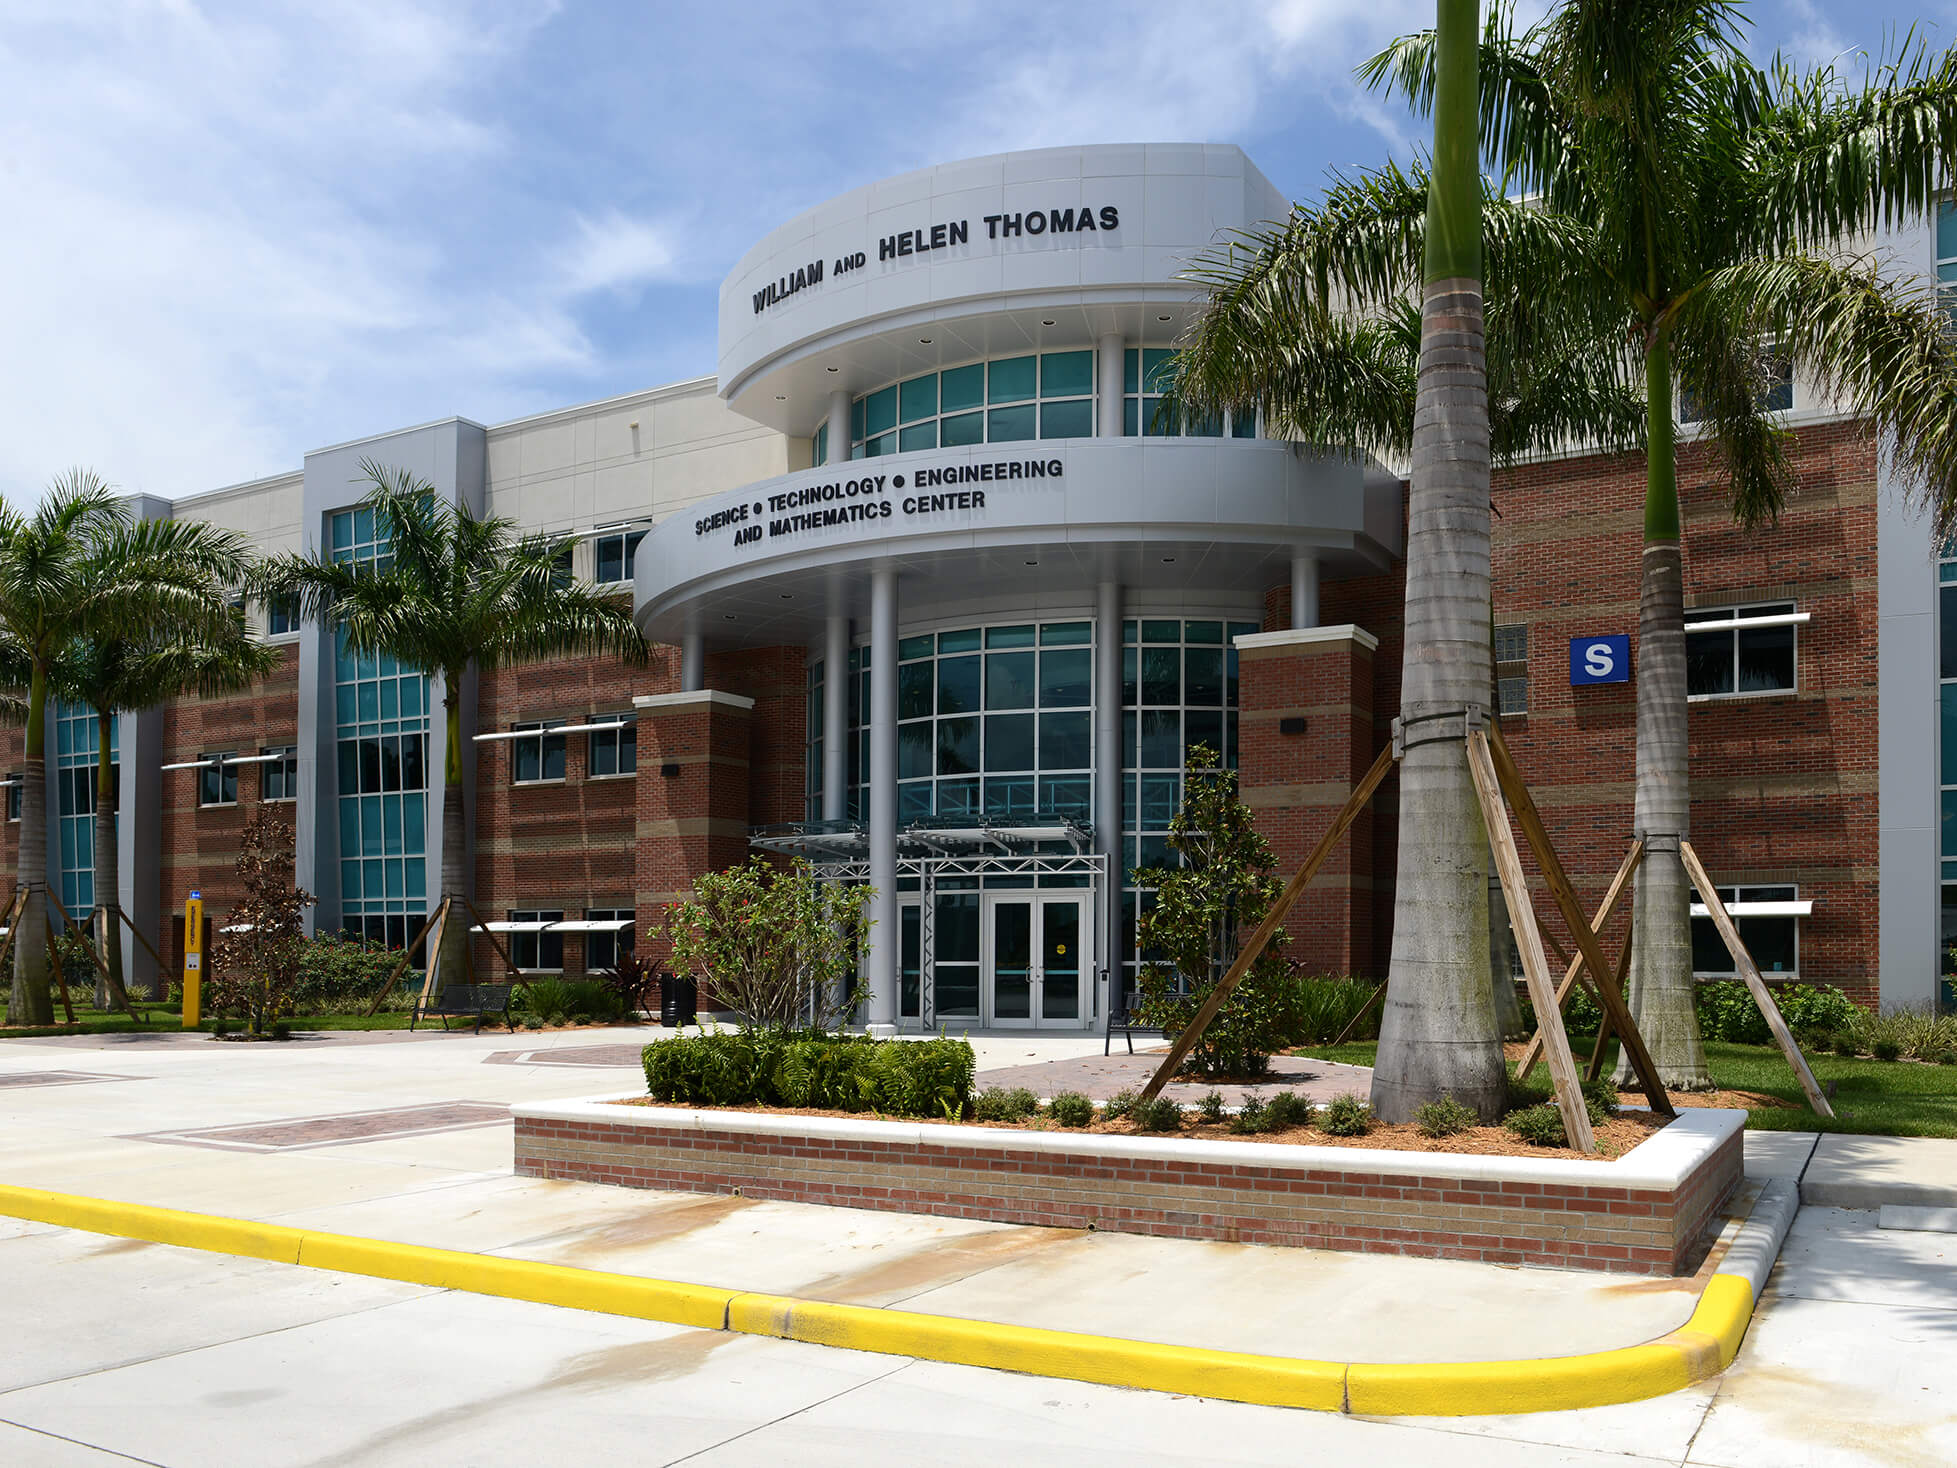 William Amp Helen Thomas Stem Center Oci Associates